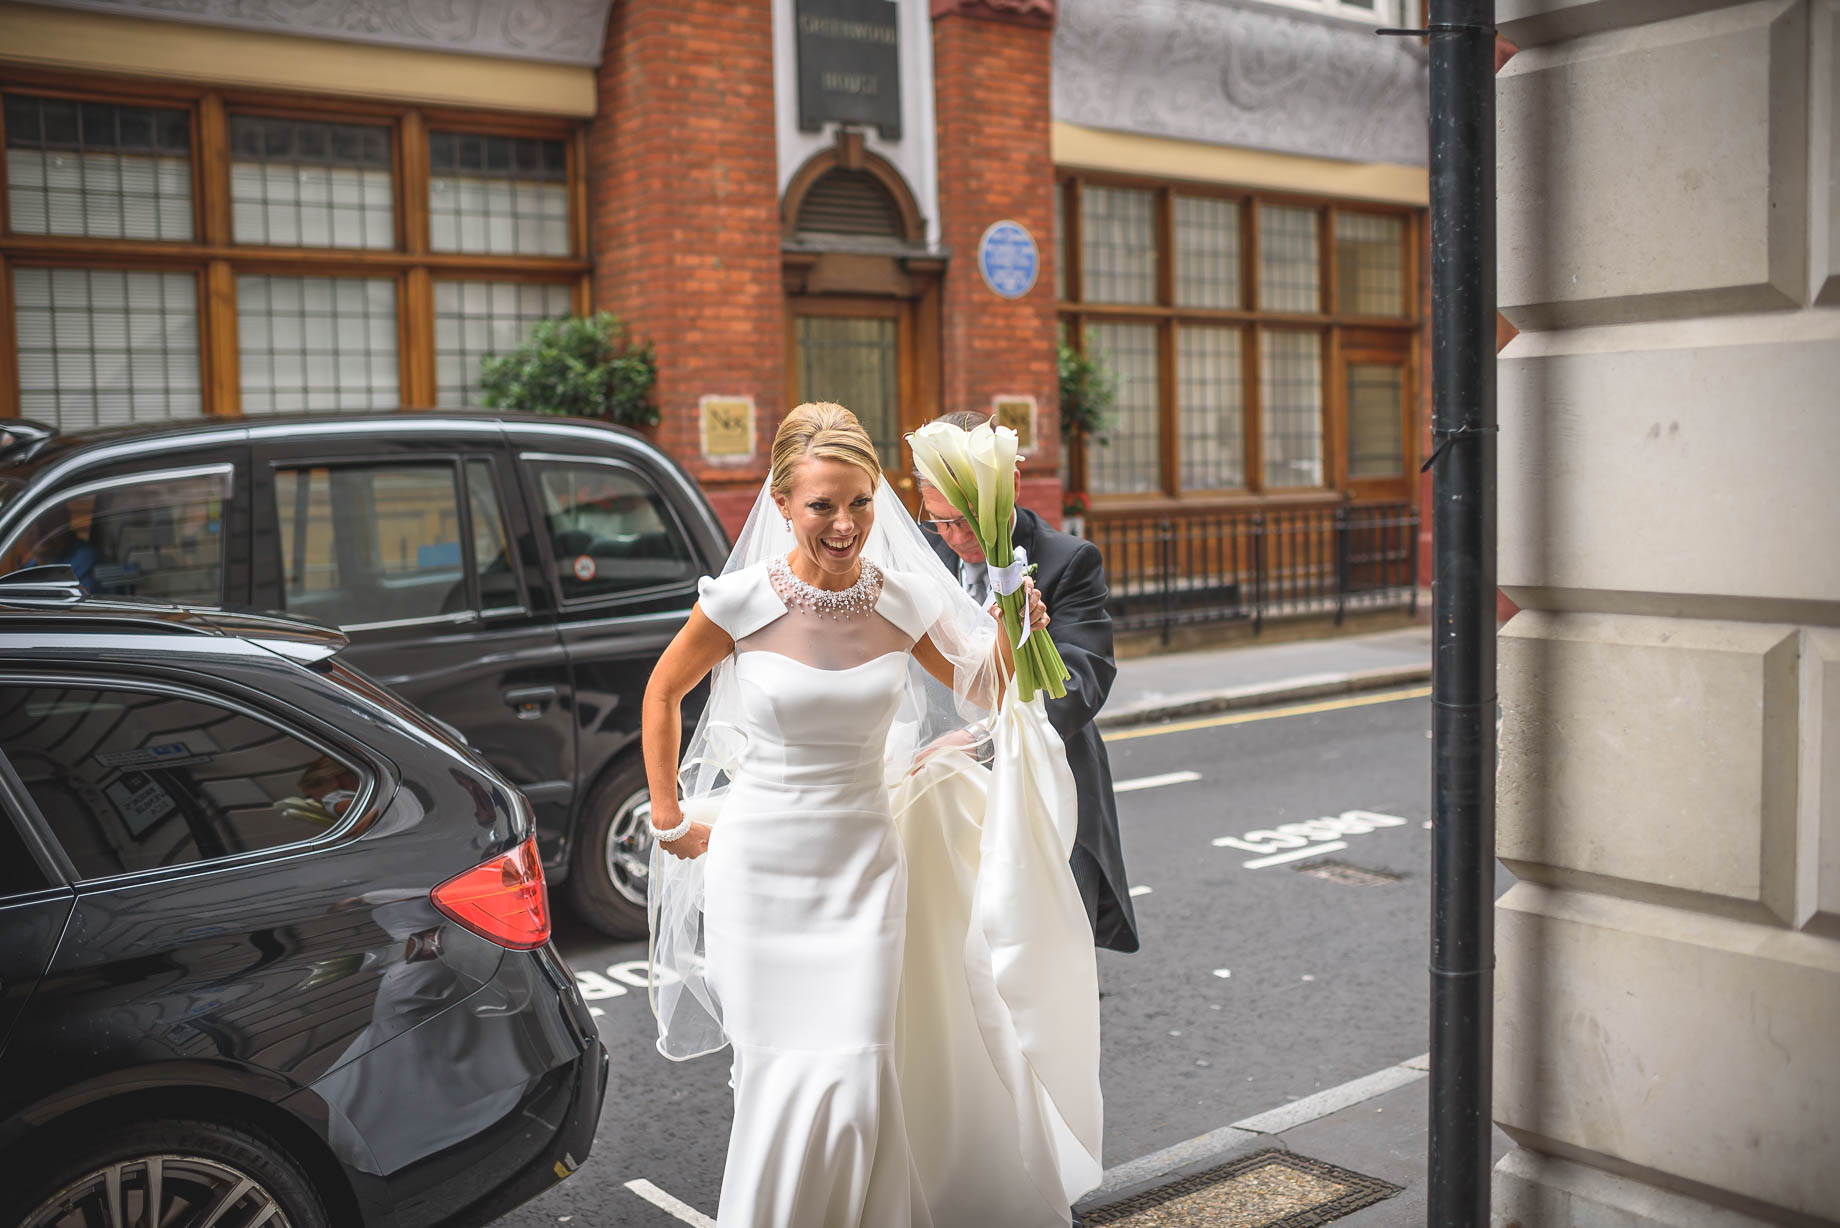 Shoreditch wedding photography - Guy Collier - Kat and Henry (64 of 200)